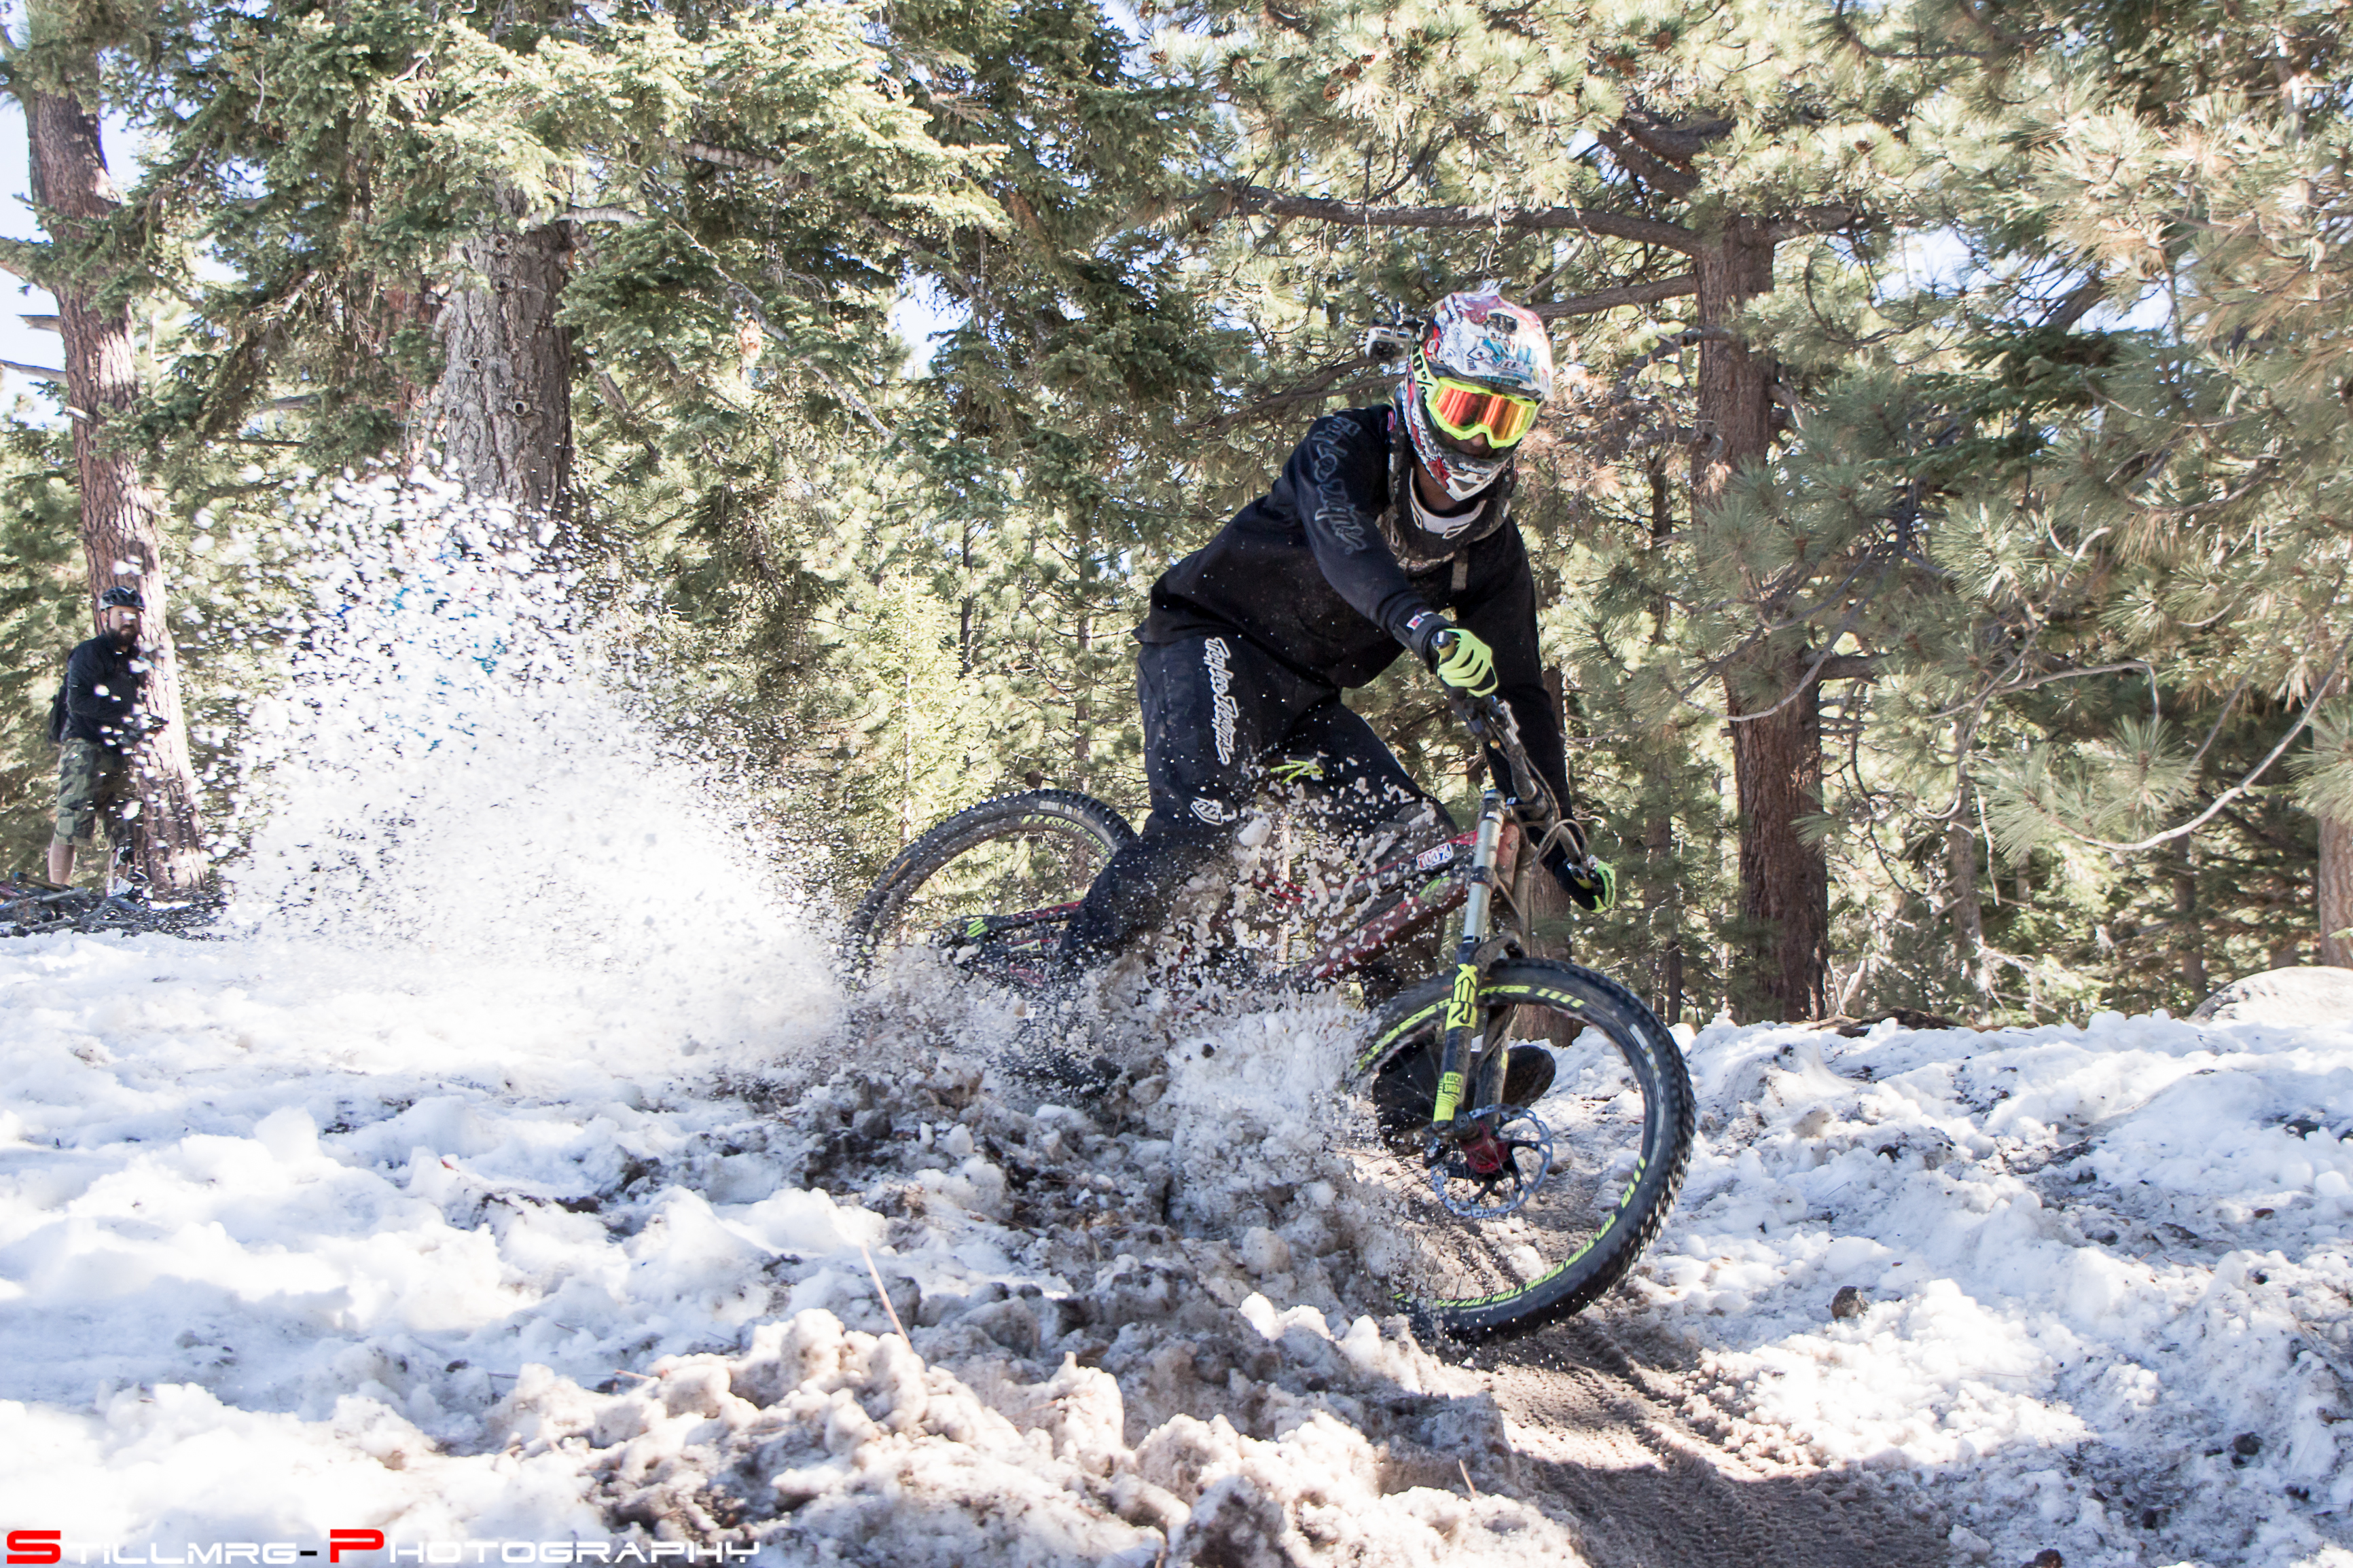 Snow Summit Stillmrg Photography Mountain Biking